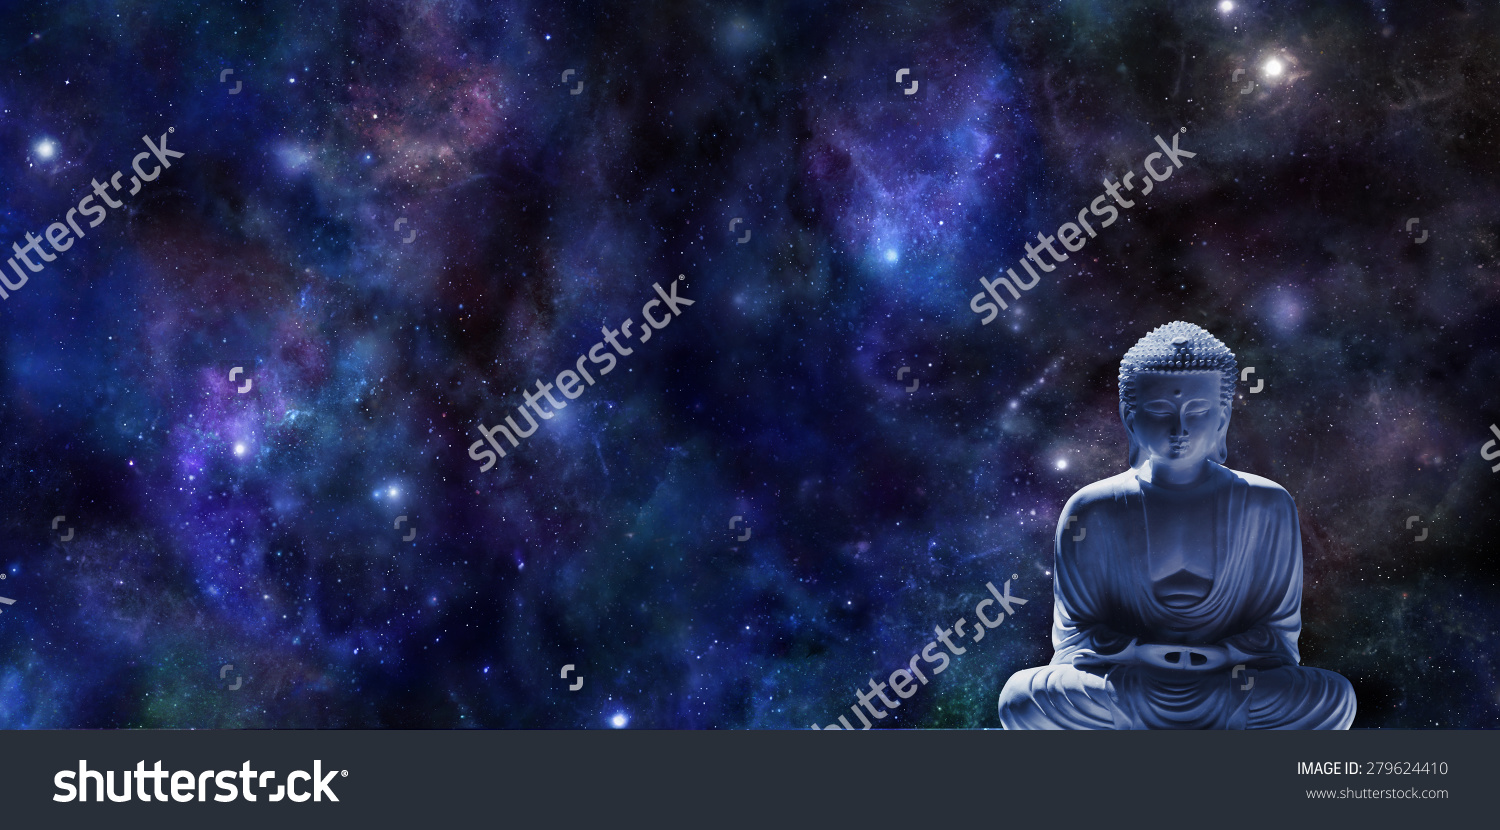 stock-photo-mindfulness-meditation-banner-wide-dark-blue-night-sky-background-with-planets-and-stars-and-a-279624410